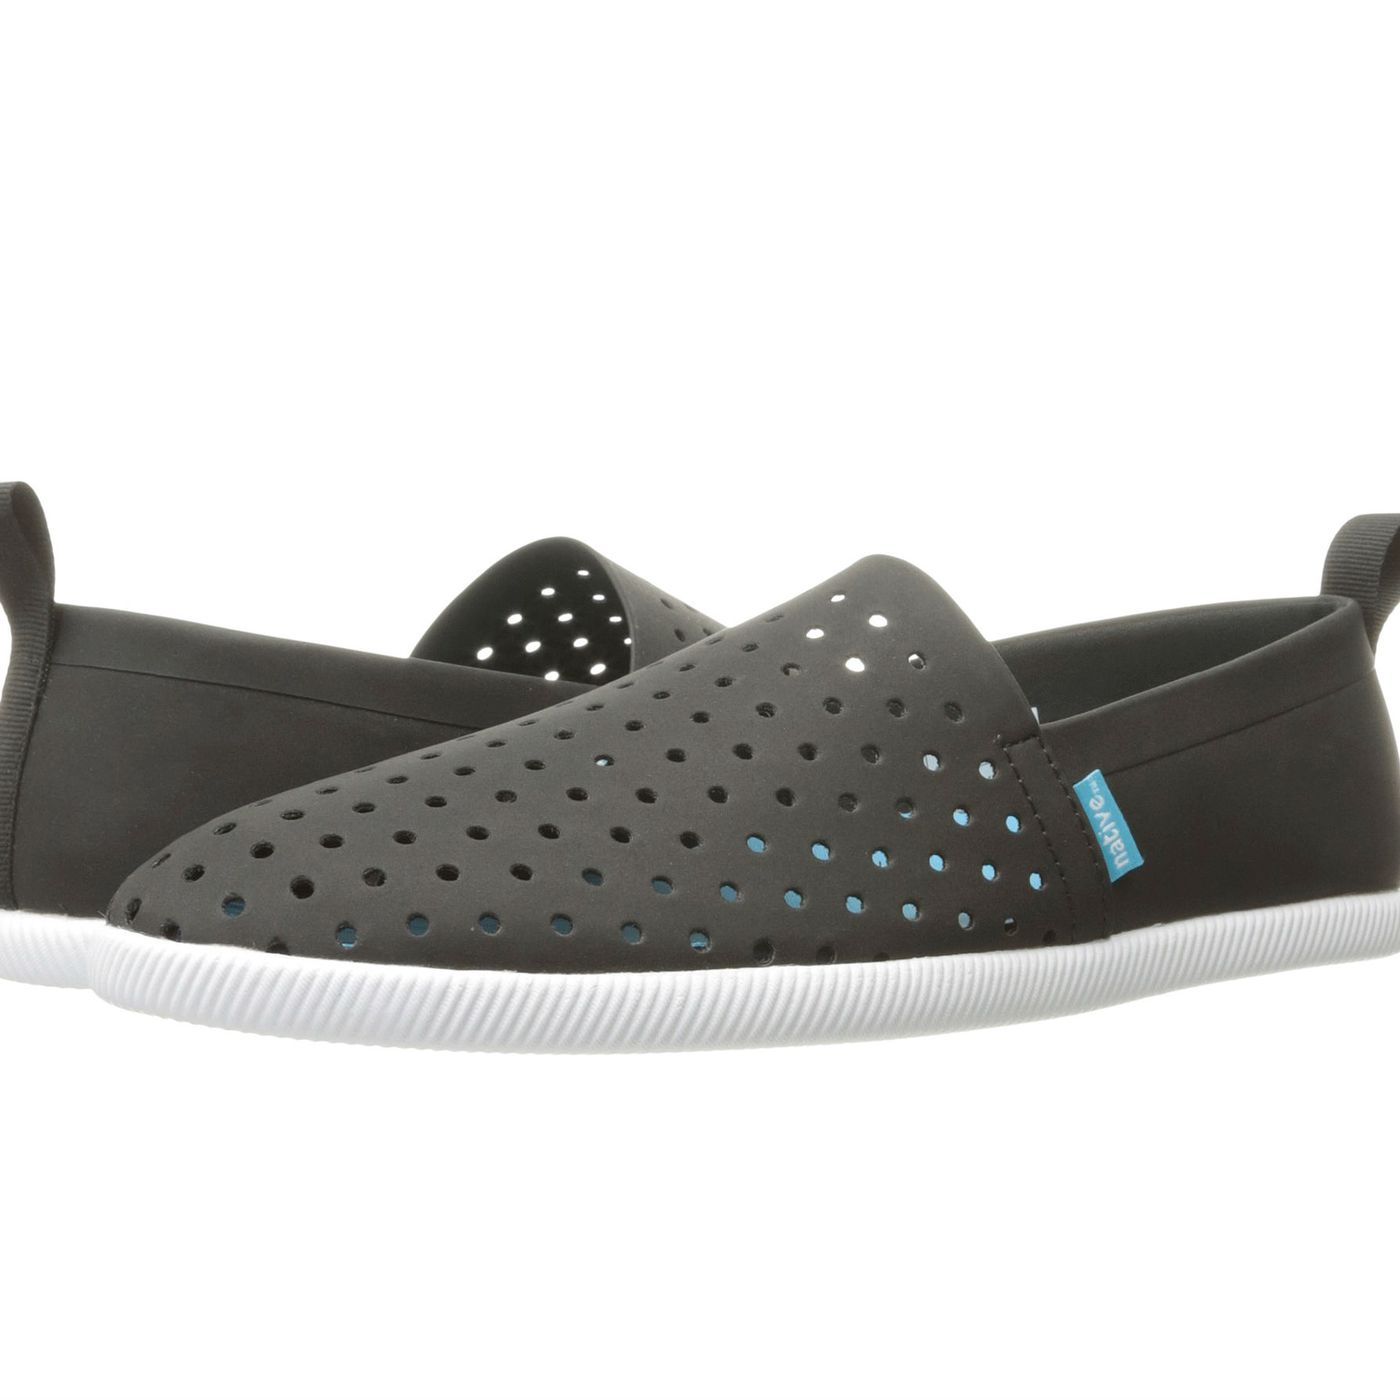 These Slip s Are Like Crocs for People Who Would Never Wear Crocs